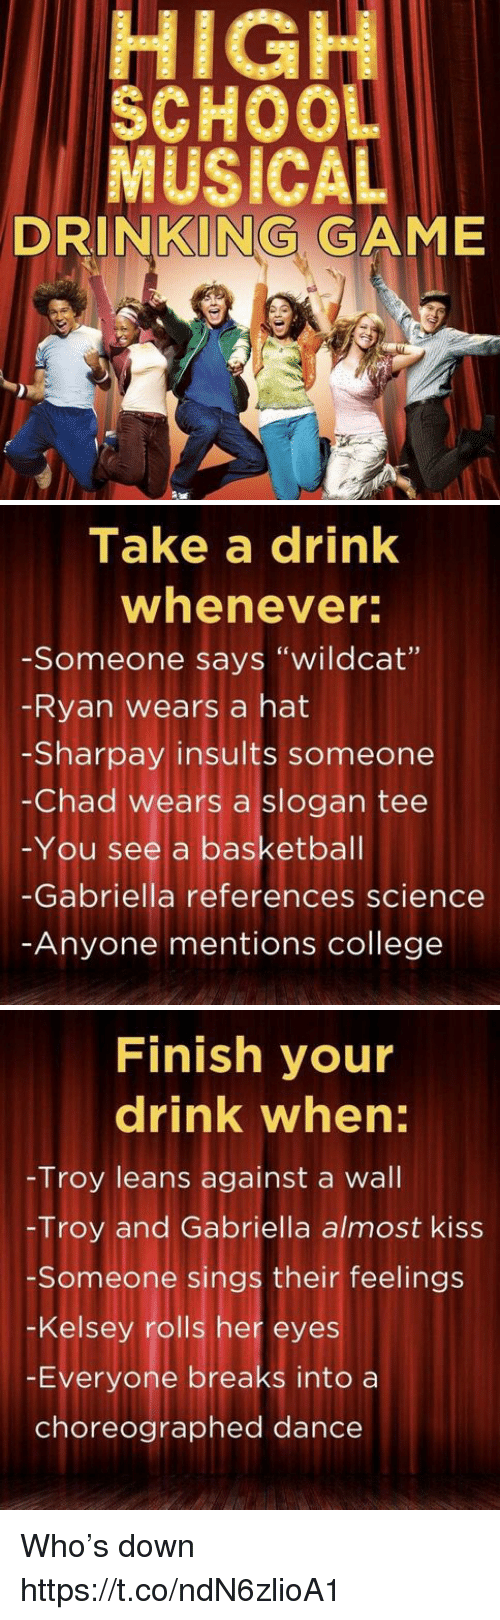 """Chads: HIGH  SCHOOL  MUSICAL  DRINKING GAME   Take a drink  whenever  -Someone says """"wildcat'""""  Ryan wears a hat  -Sharpay insults someone  -Chad wears a slogan tee  You see a basketball  Gabriella references science  Anyone mentions college   Finish your  drink when:  Troy leans against a wall  -Troy and Gabriella almost kiss  Someone sings their feelings  -Kelsey rolls her eyes  Everyone breaks into a  choreographed dance Who's down https://t.co/ndN6zlioA1"""